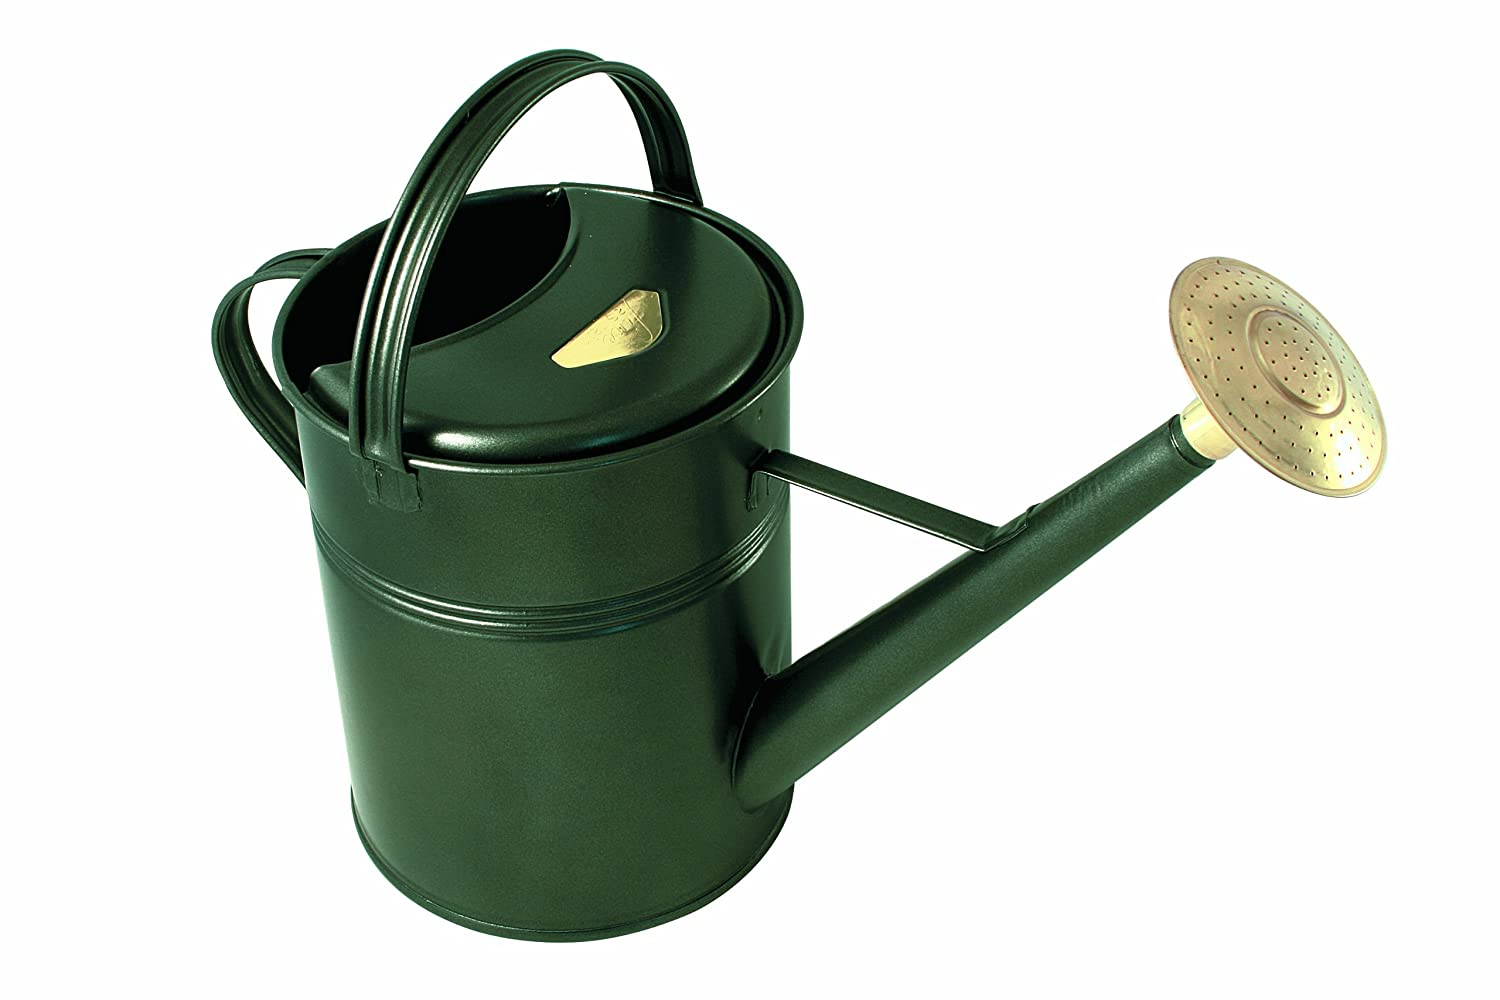 Image result for images of john haws first watering can